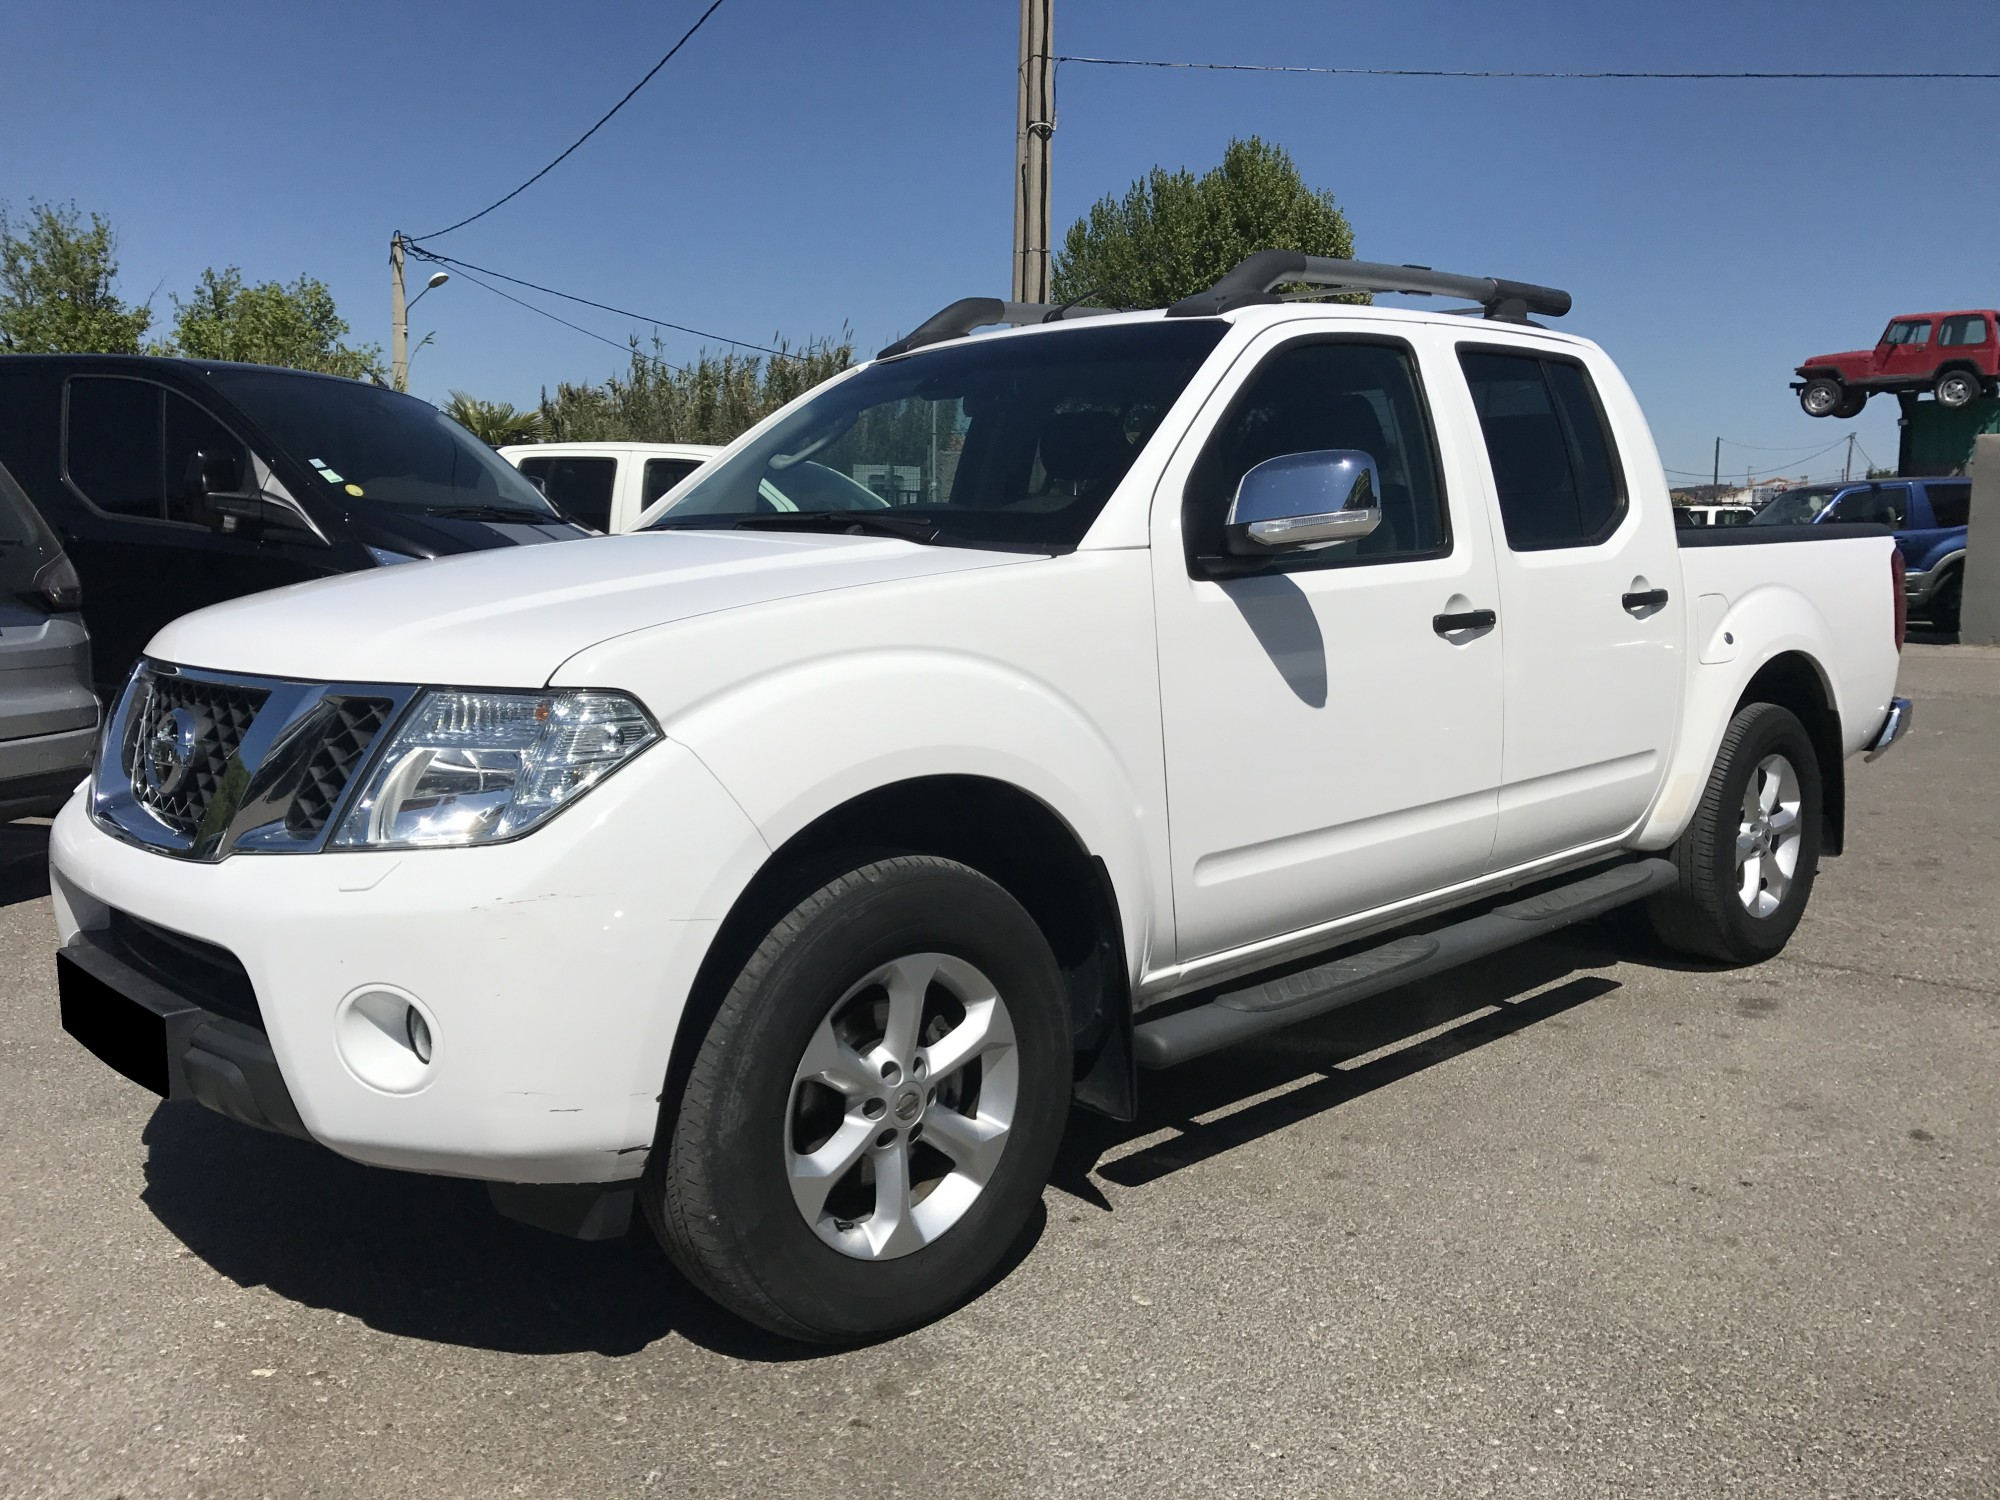 nissan navara d occasion occasion 4x4 nissan navara nissan navara belgium used search for your. Black Bedroom Furniture Sets. Home Design Ideas